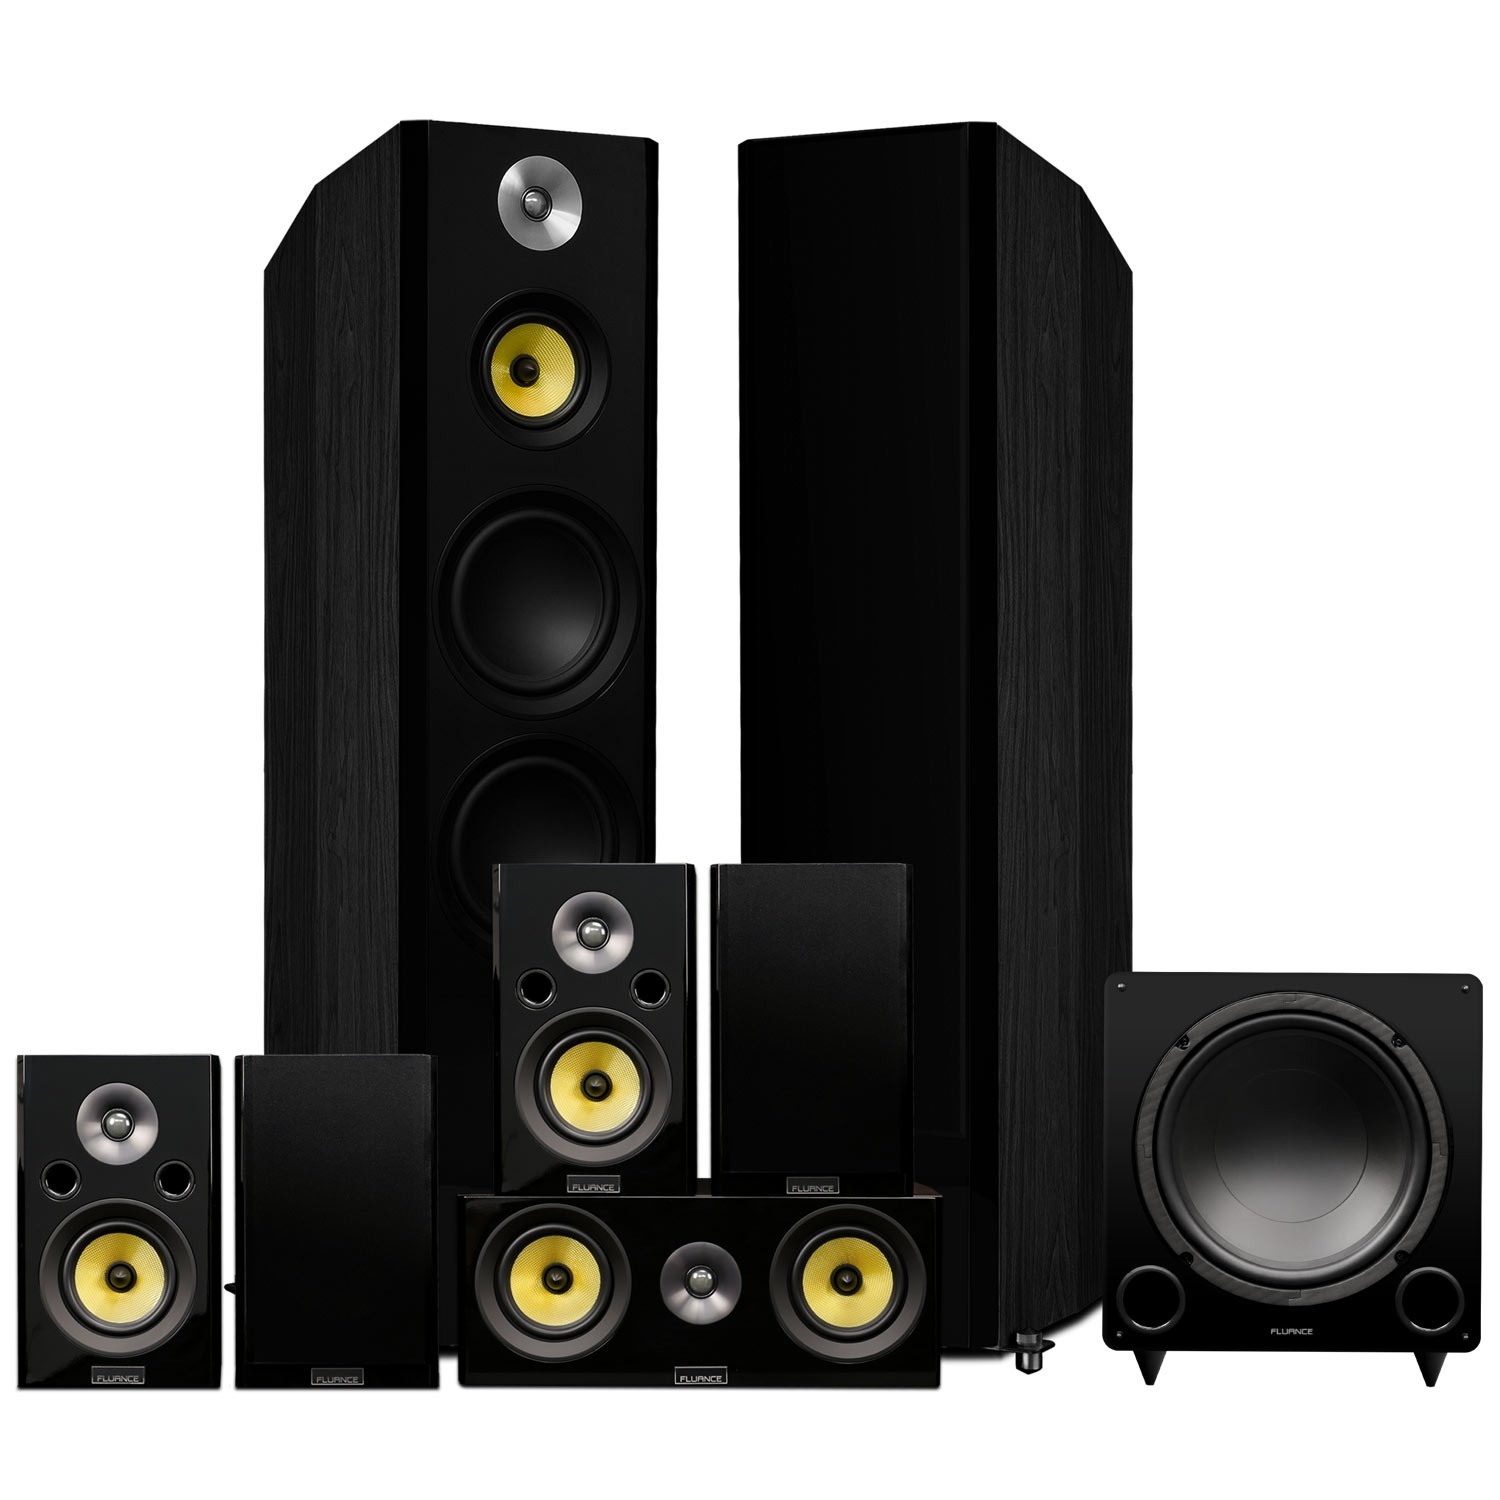 Signature Series Surround Sound Home Theater 7.1 Channel Speaker System - Black Ash